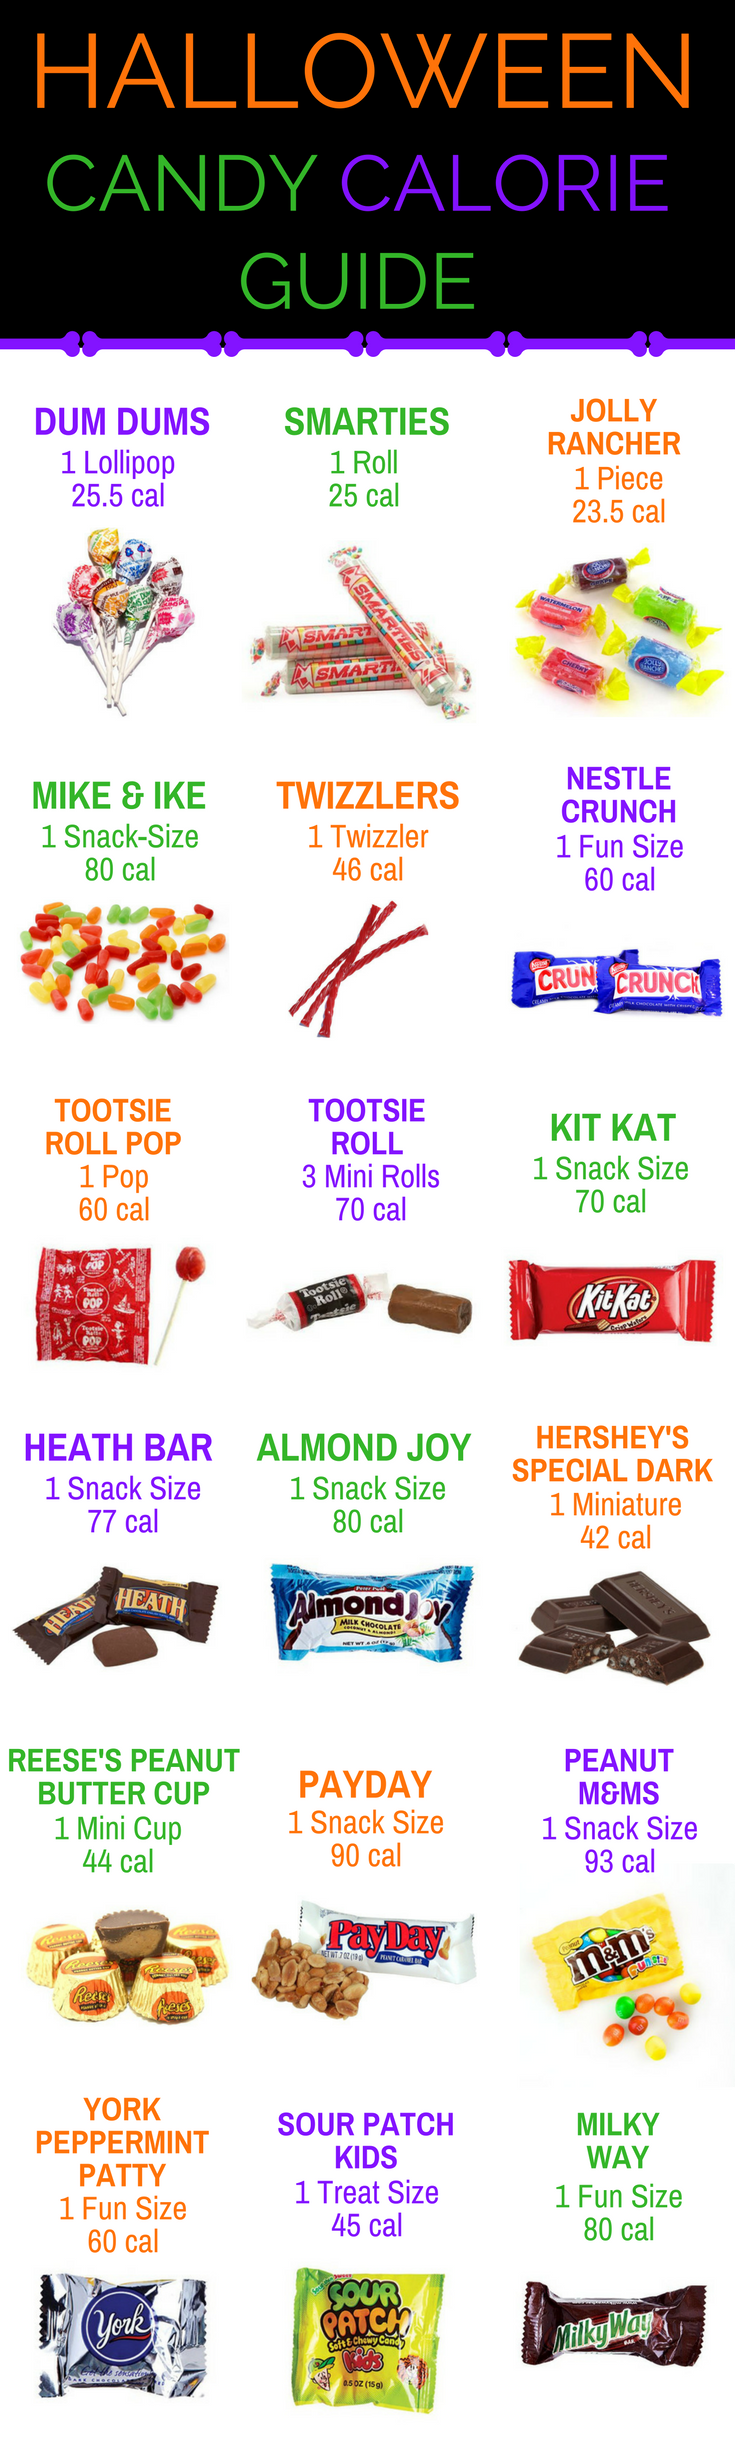 Angiecutie Pictures kit kat fun size nutrition facts . hot naked pics. comments: 4